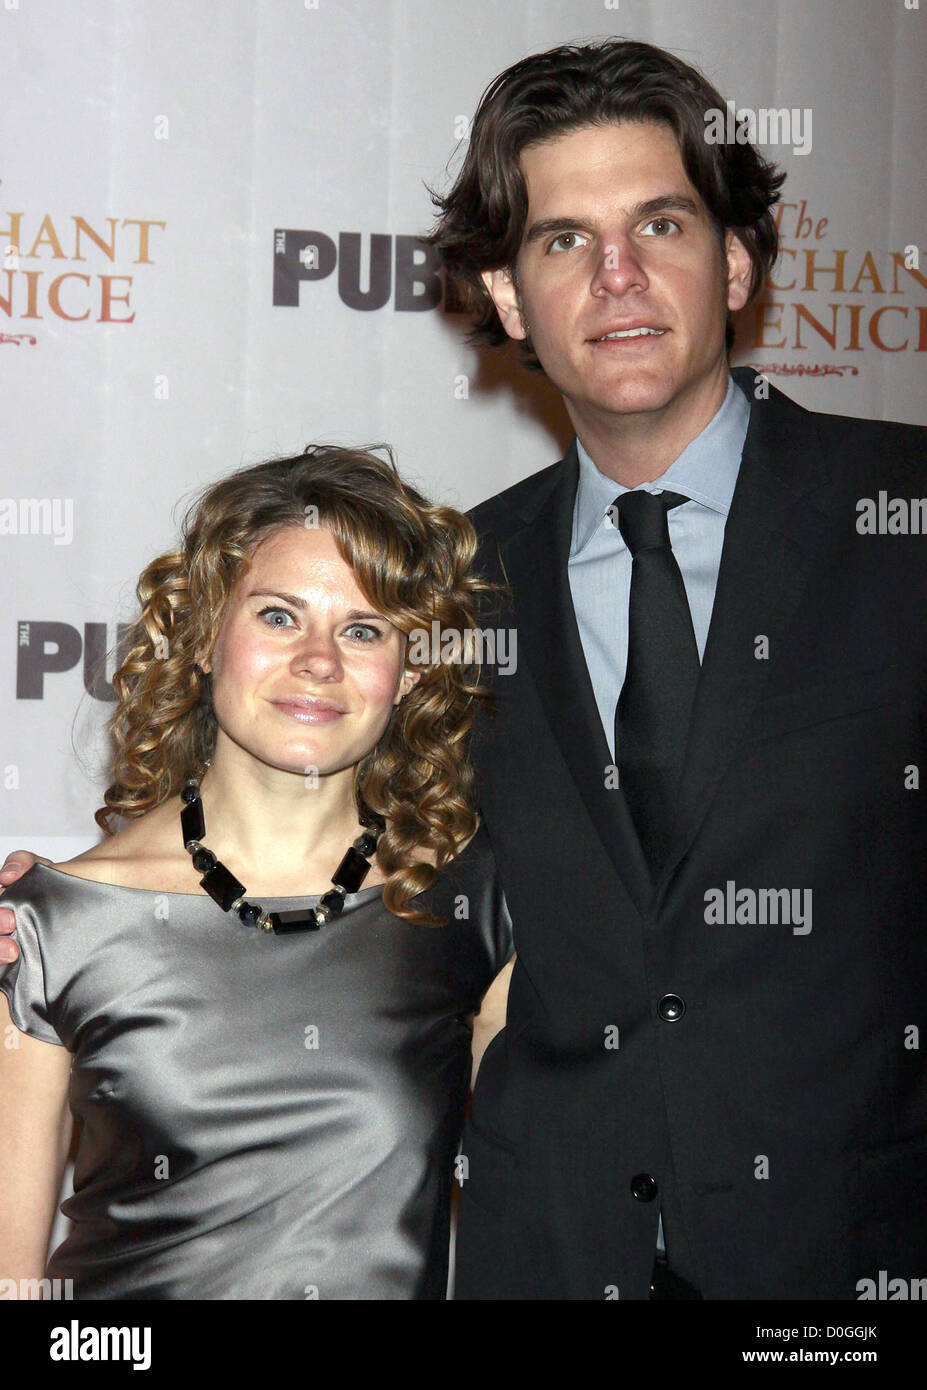 Celia Keenan-Bolger and Alex Timbers Opening night celebration of The Public Theater Broadway production of 'The - Stock Image